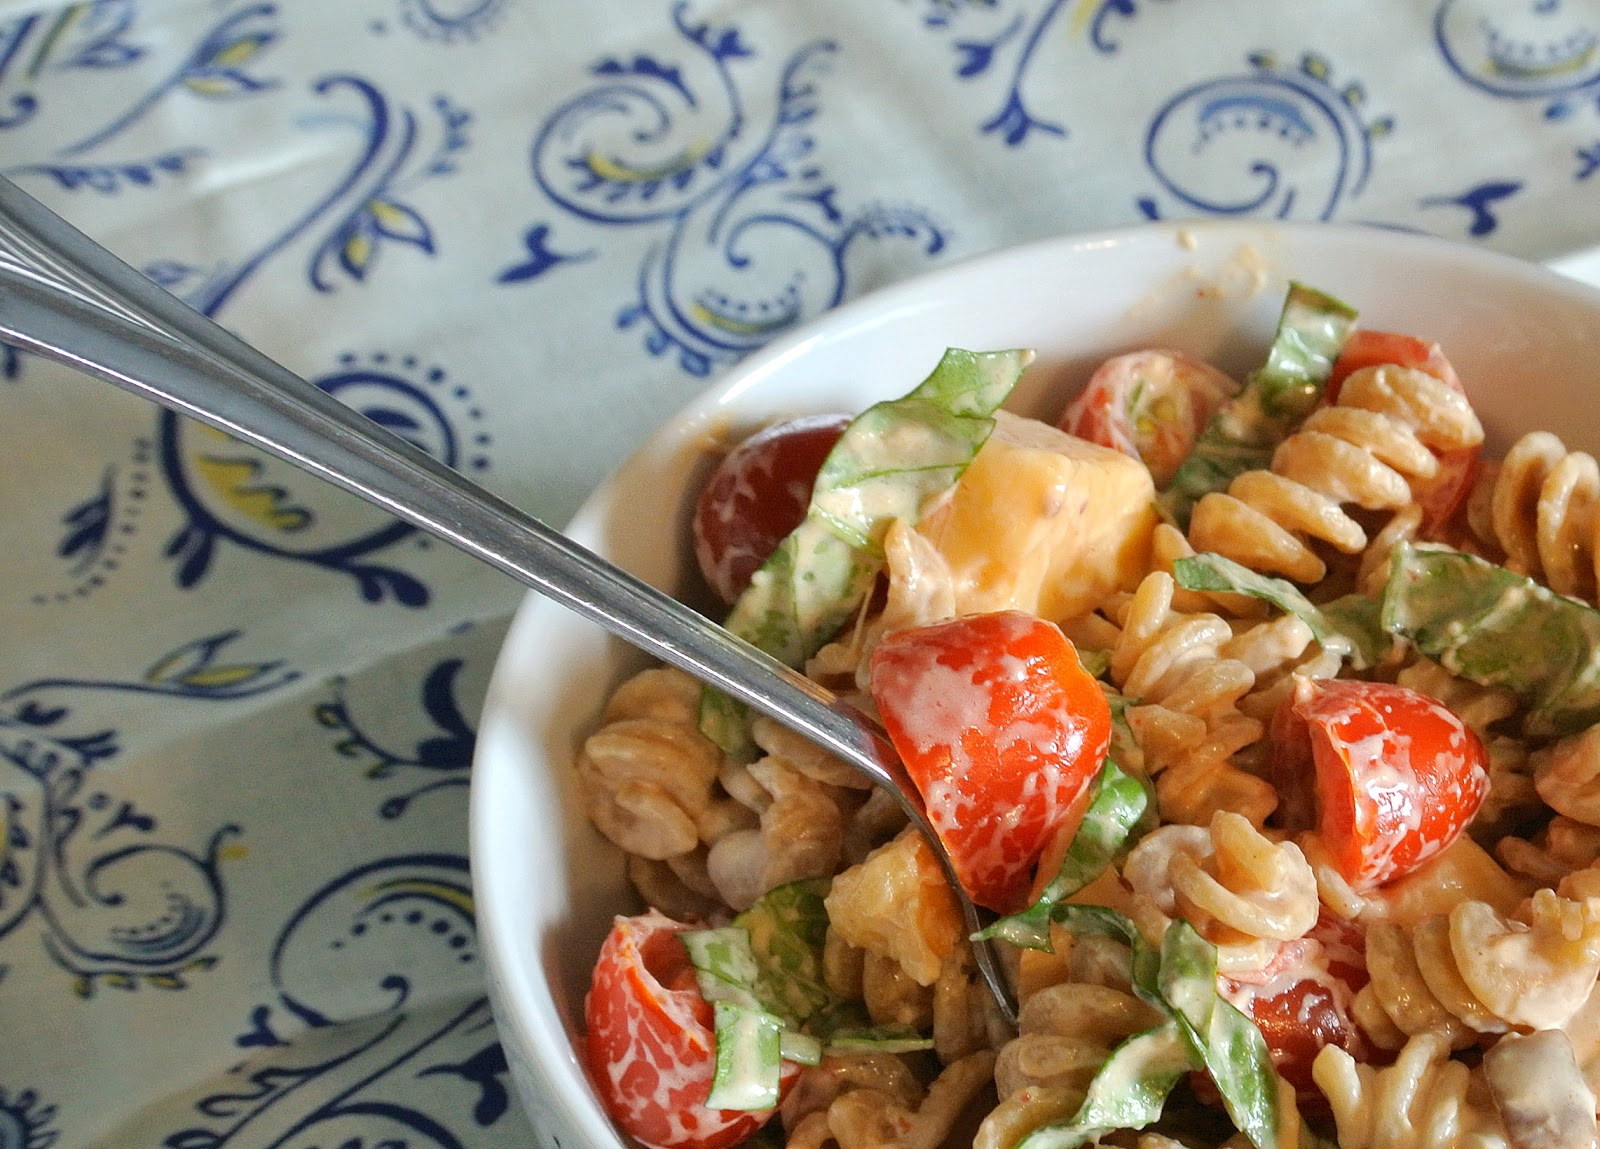 Spicy Pasta Salad With Smoked Gouda, Tomatoes, And Basil Recipes ...